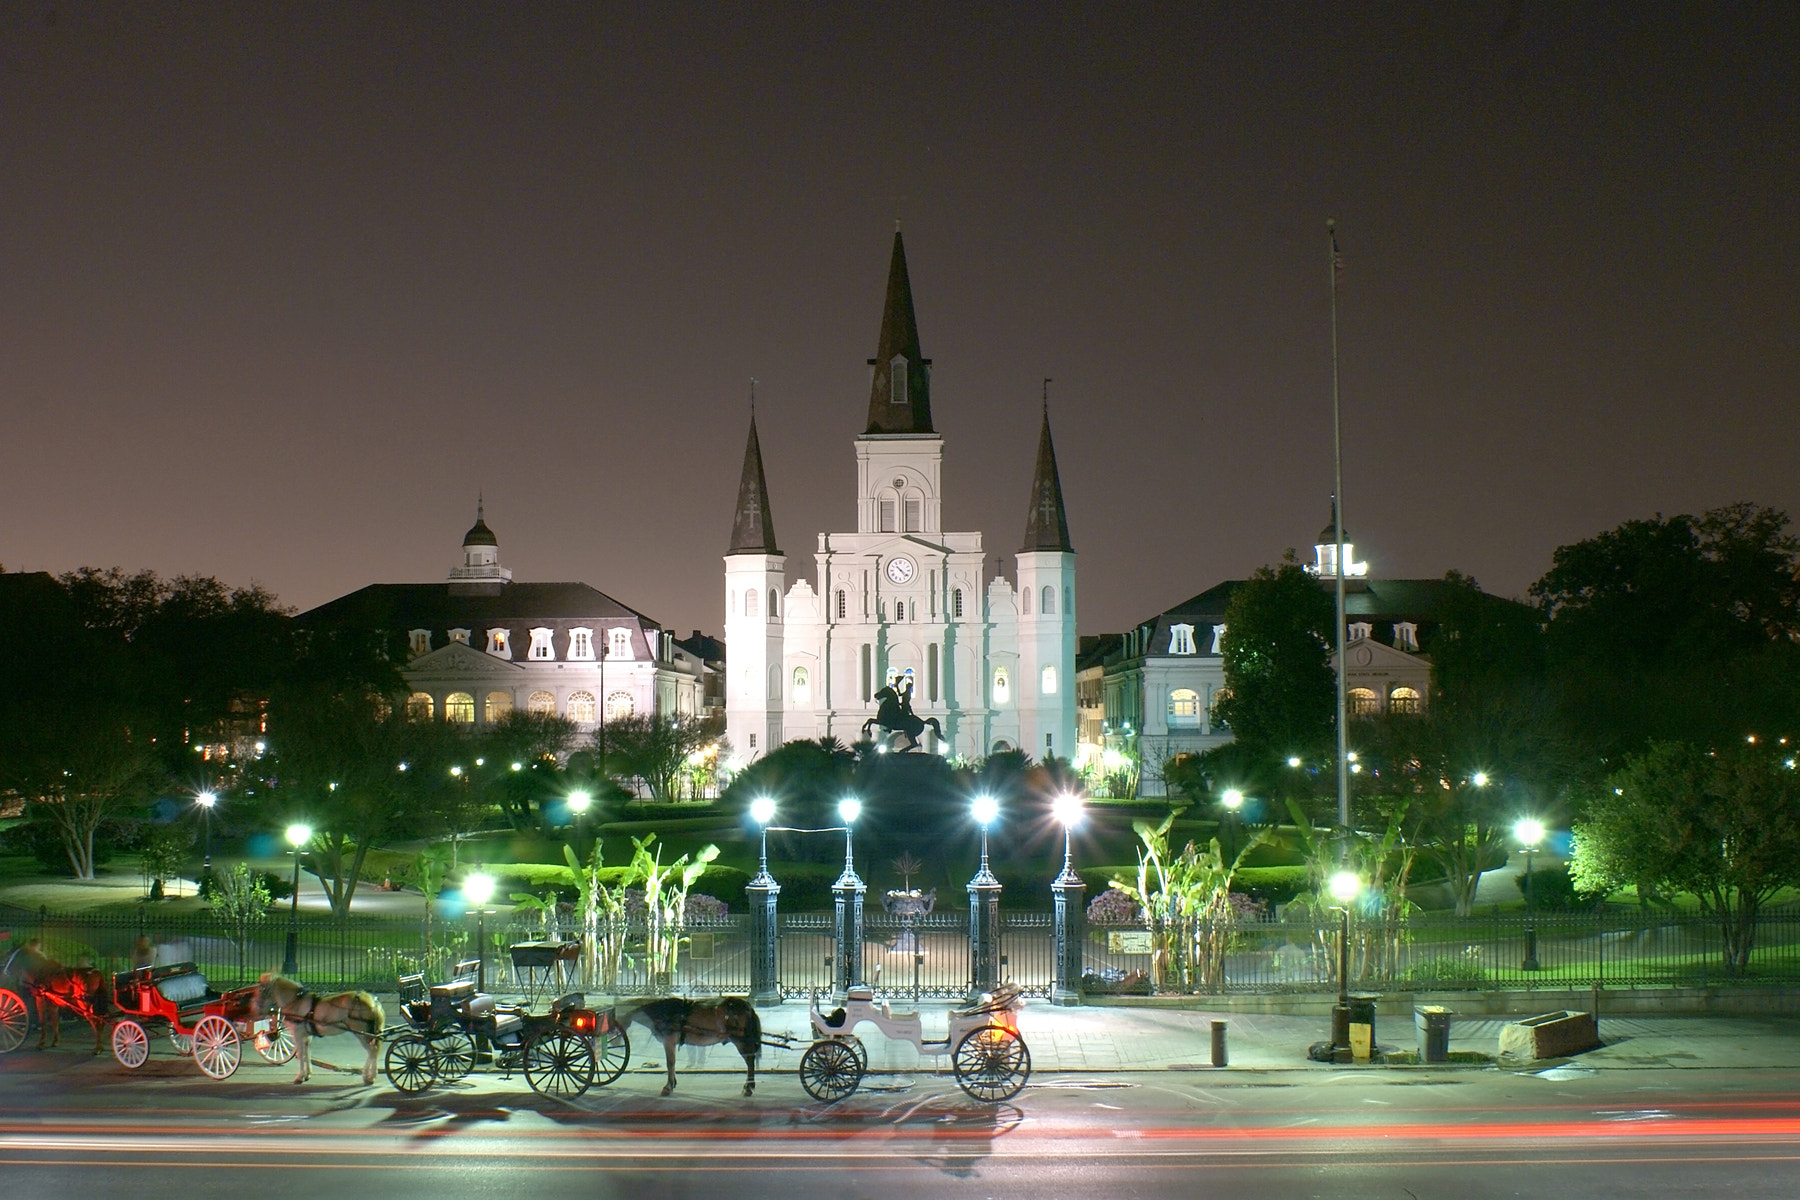 Photograph New Orleans At Night by Stephen Kerstiens on 500px